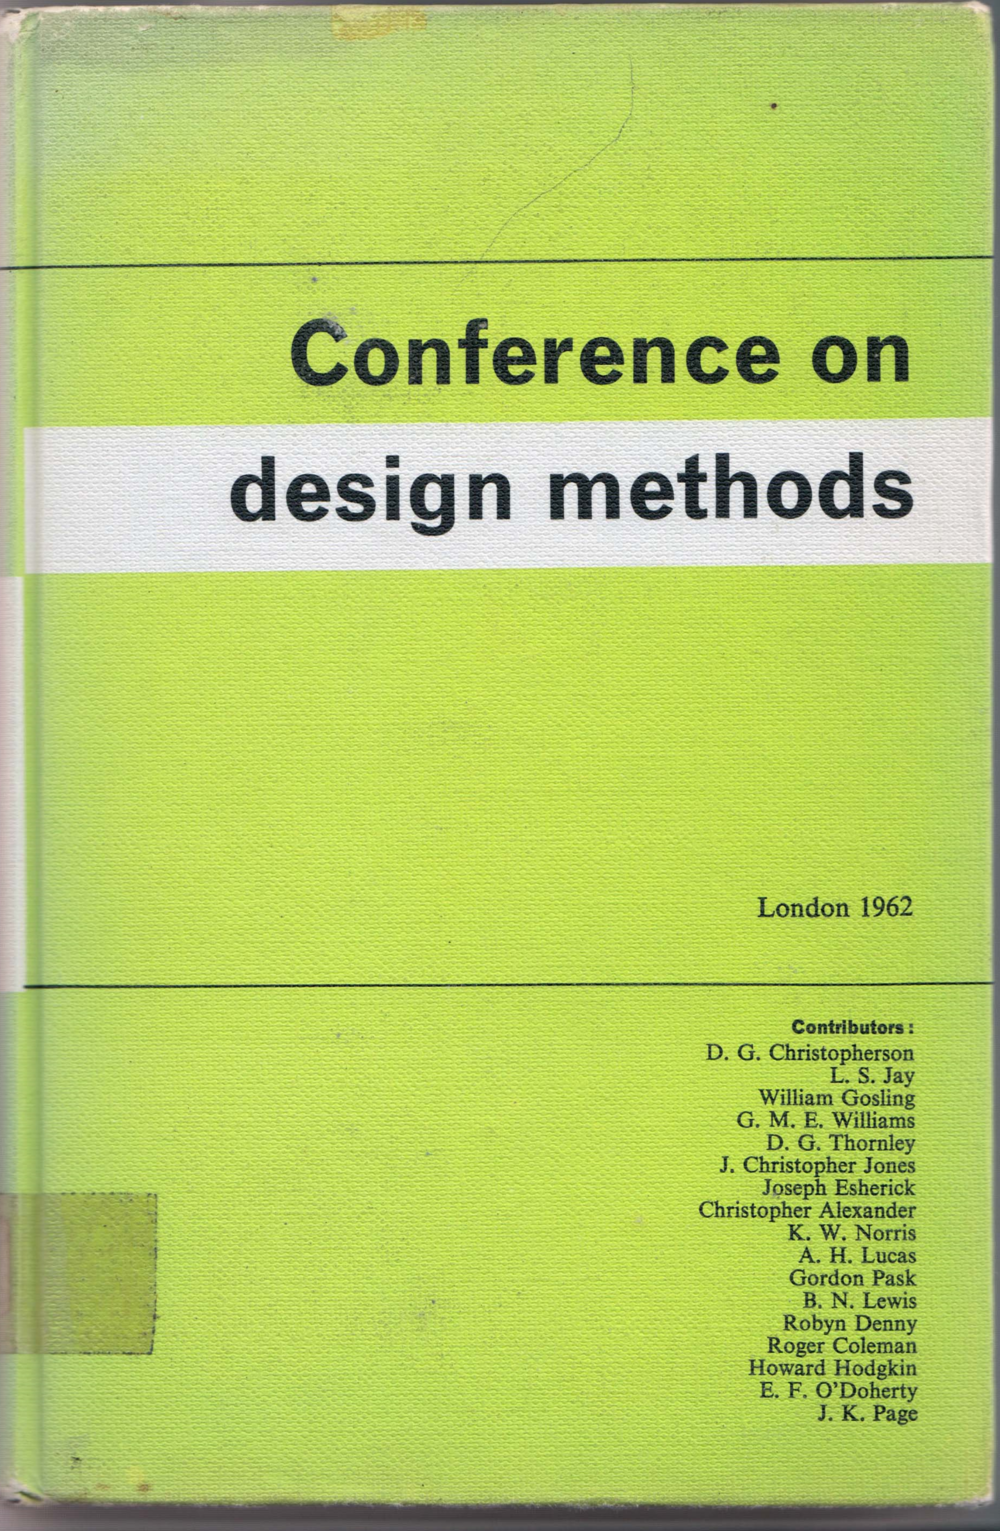 1962 Conference on Design Methods